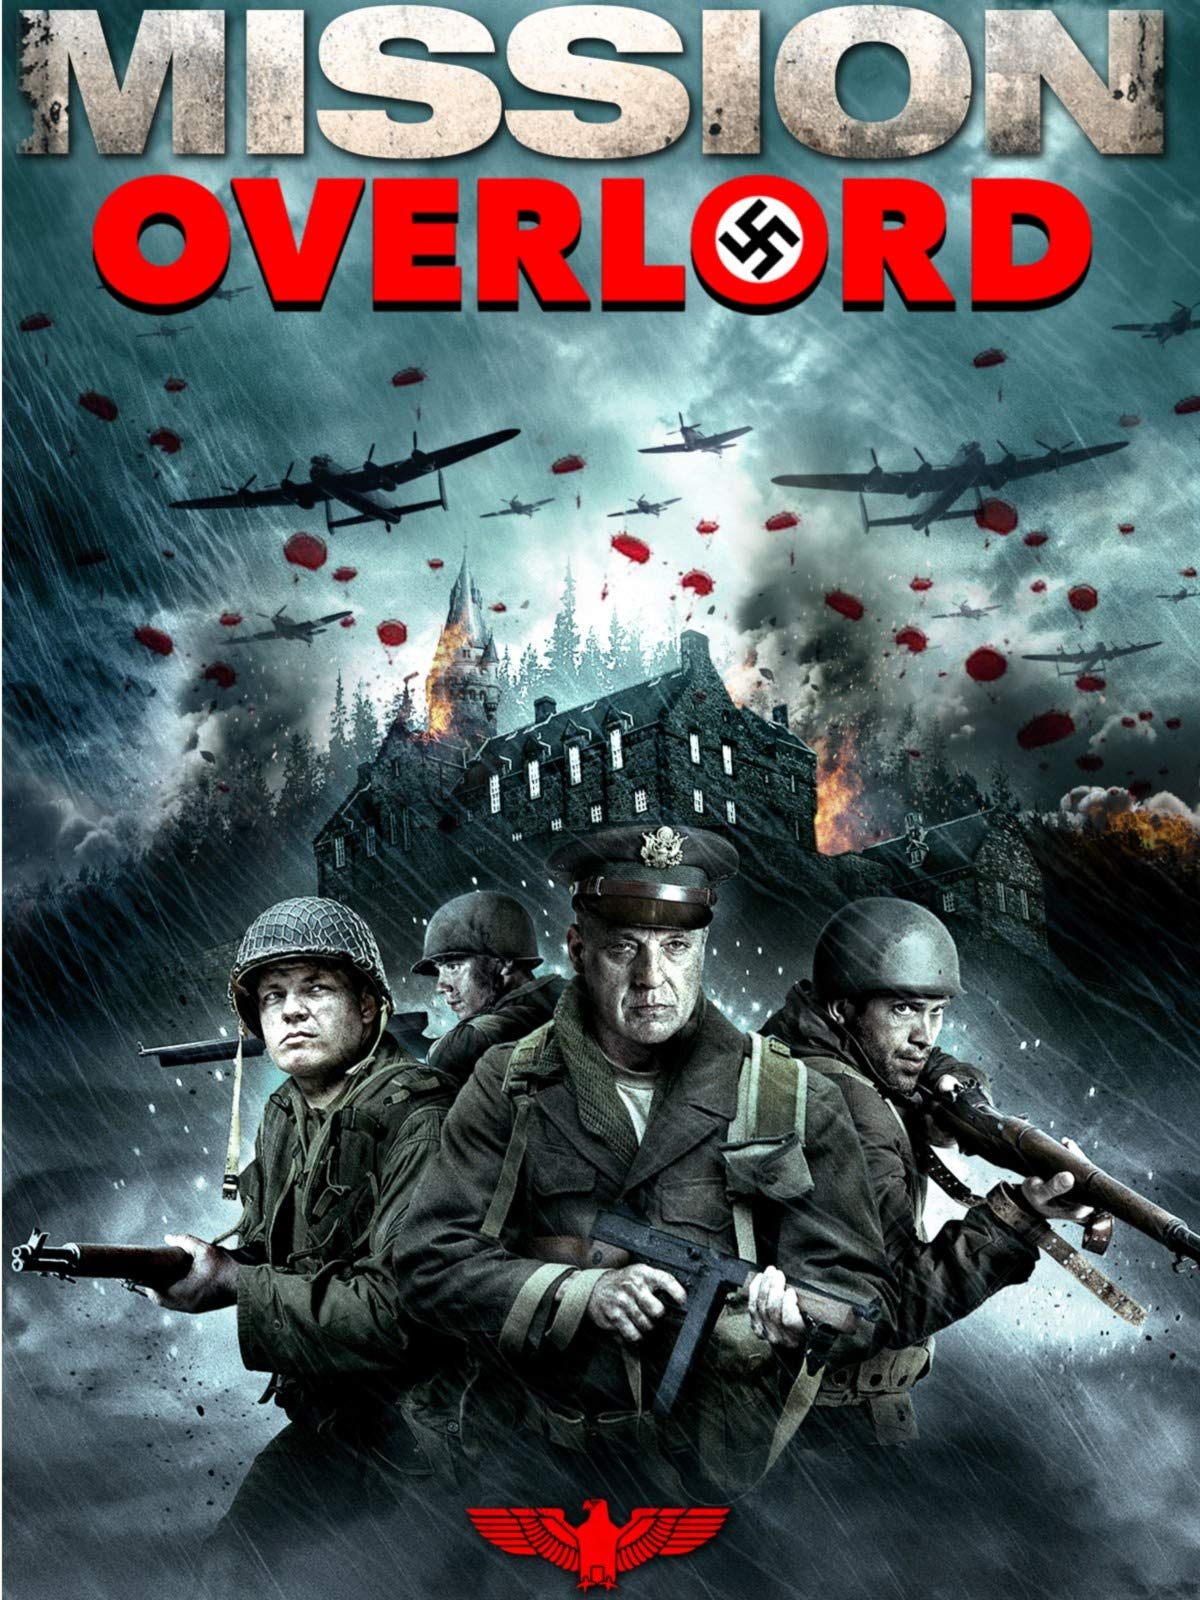 Mission Overlord